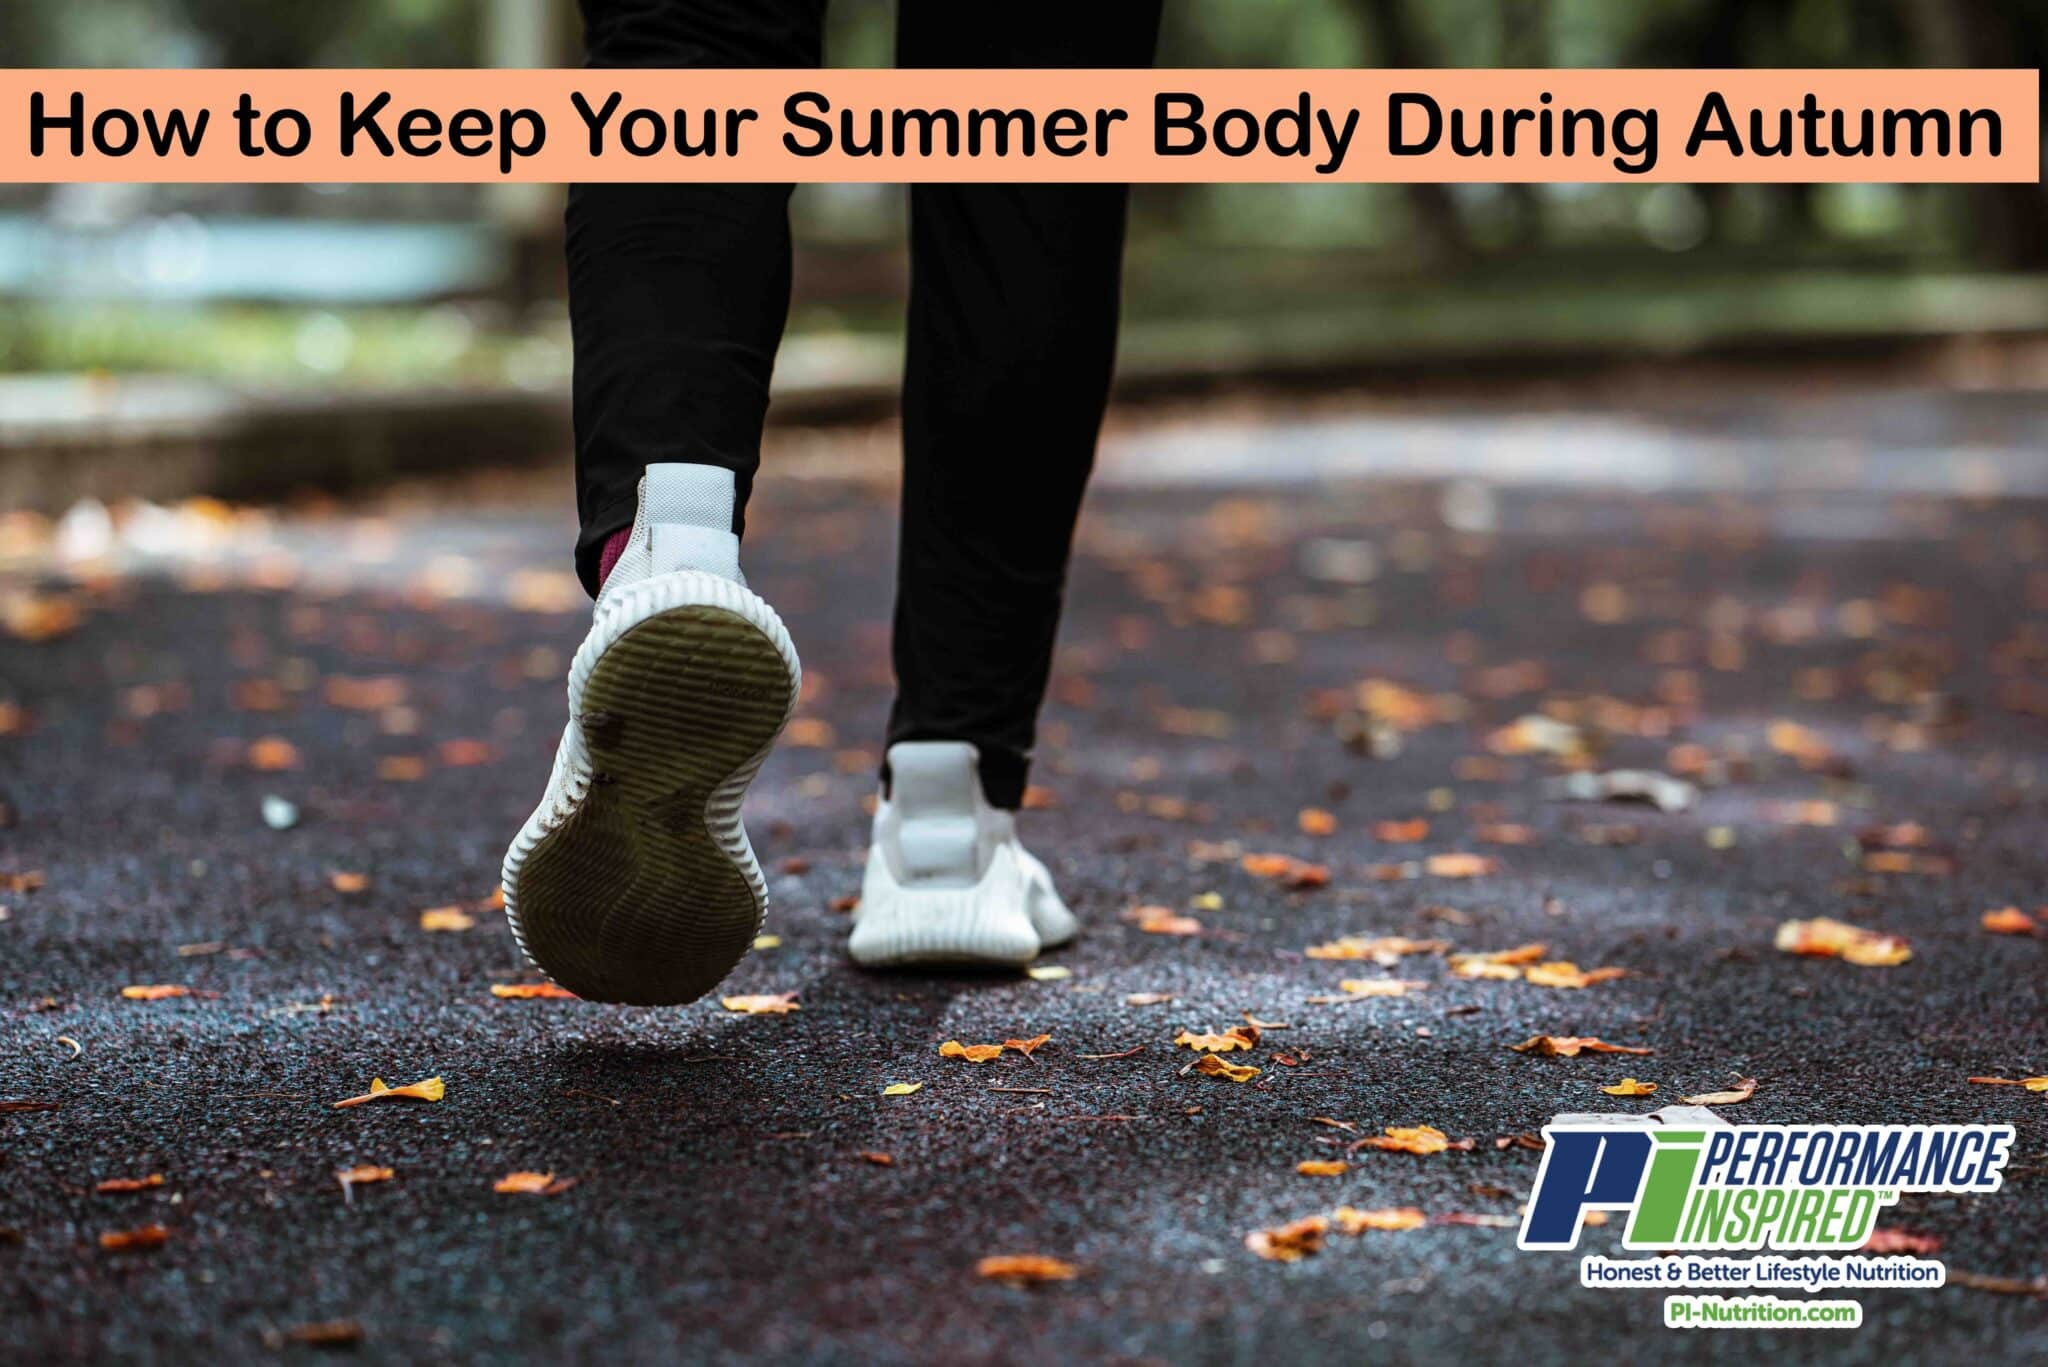 How to Keep Your Summer Body During Autumn